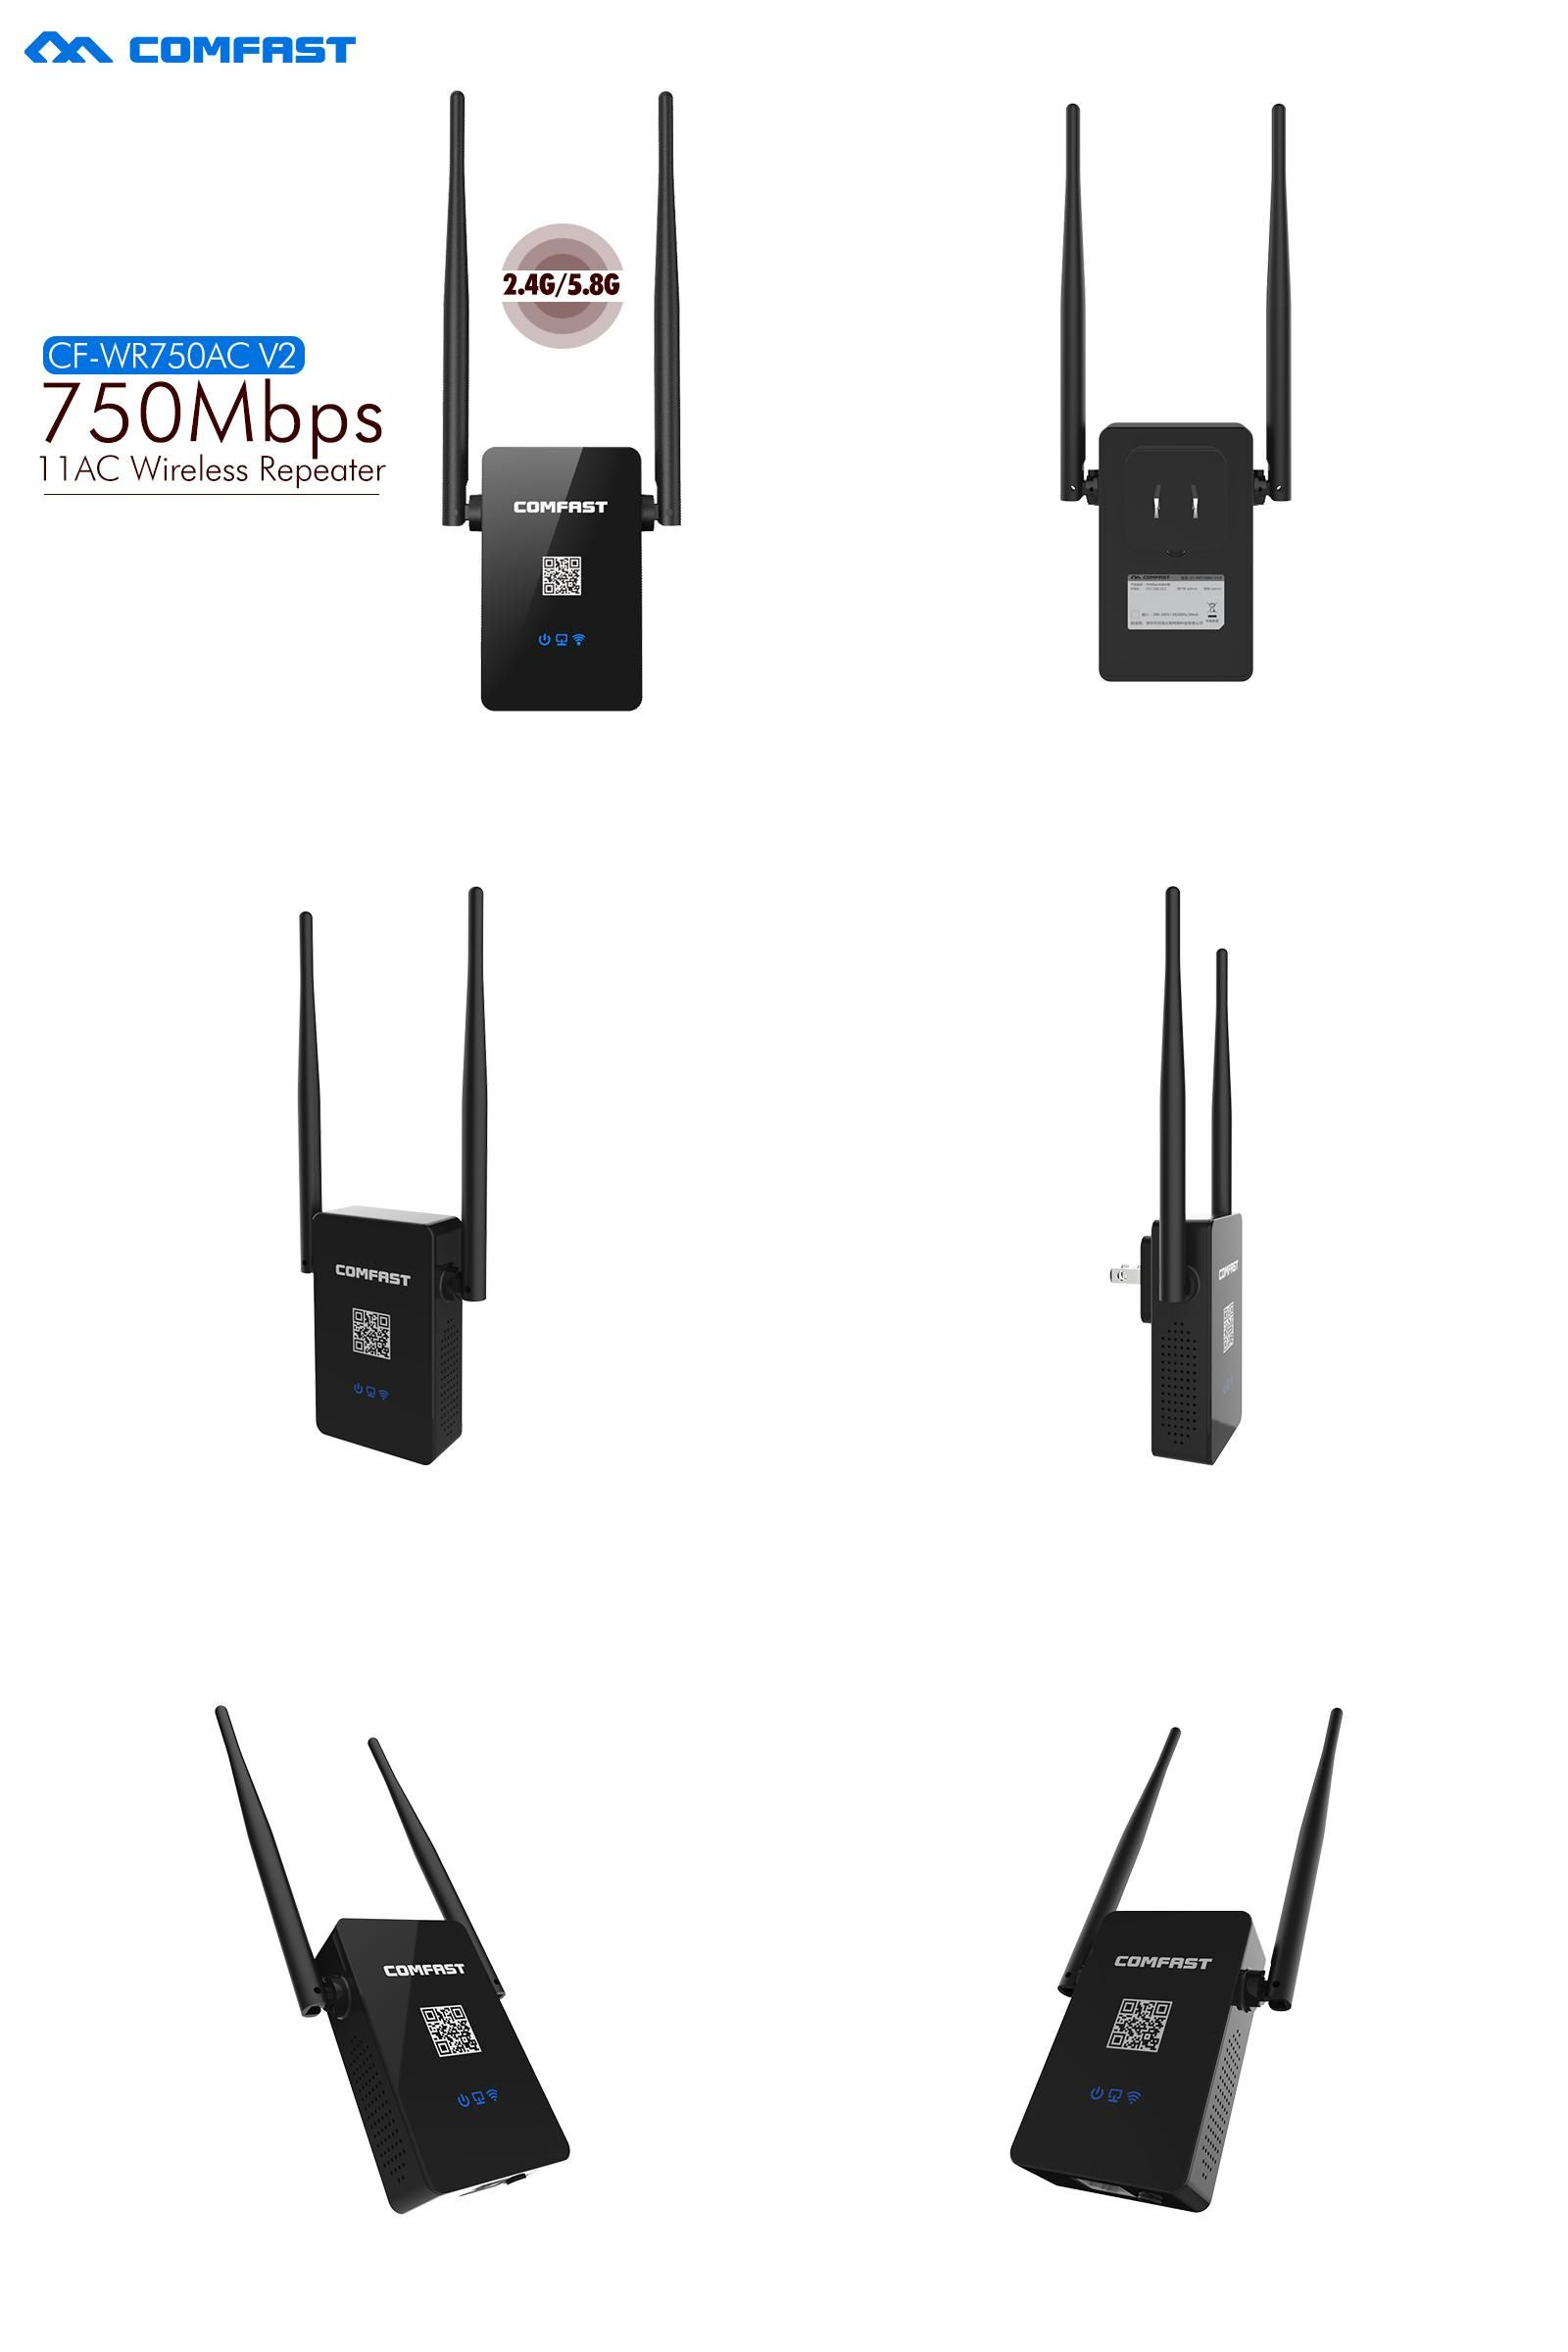 Visit To Buy Comfast Dual Band Wifi Repeater 750m 80211ac 24g 58 Xiaomi Amplifier 2 Extender Usb